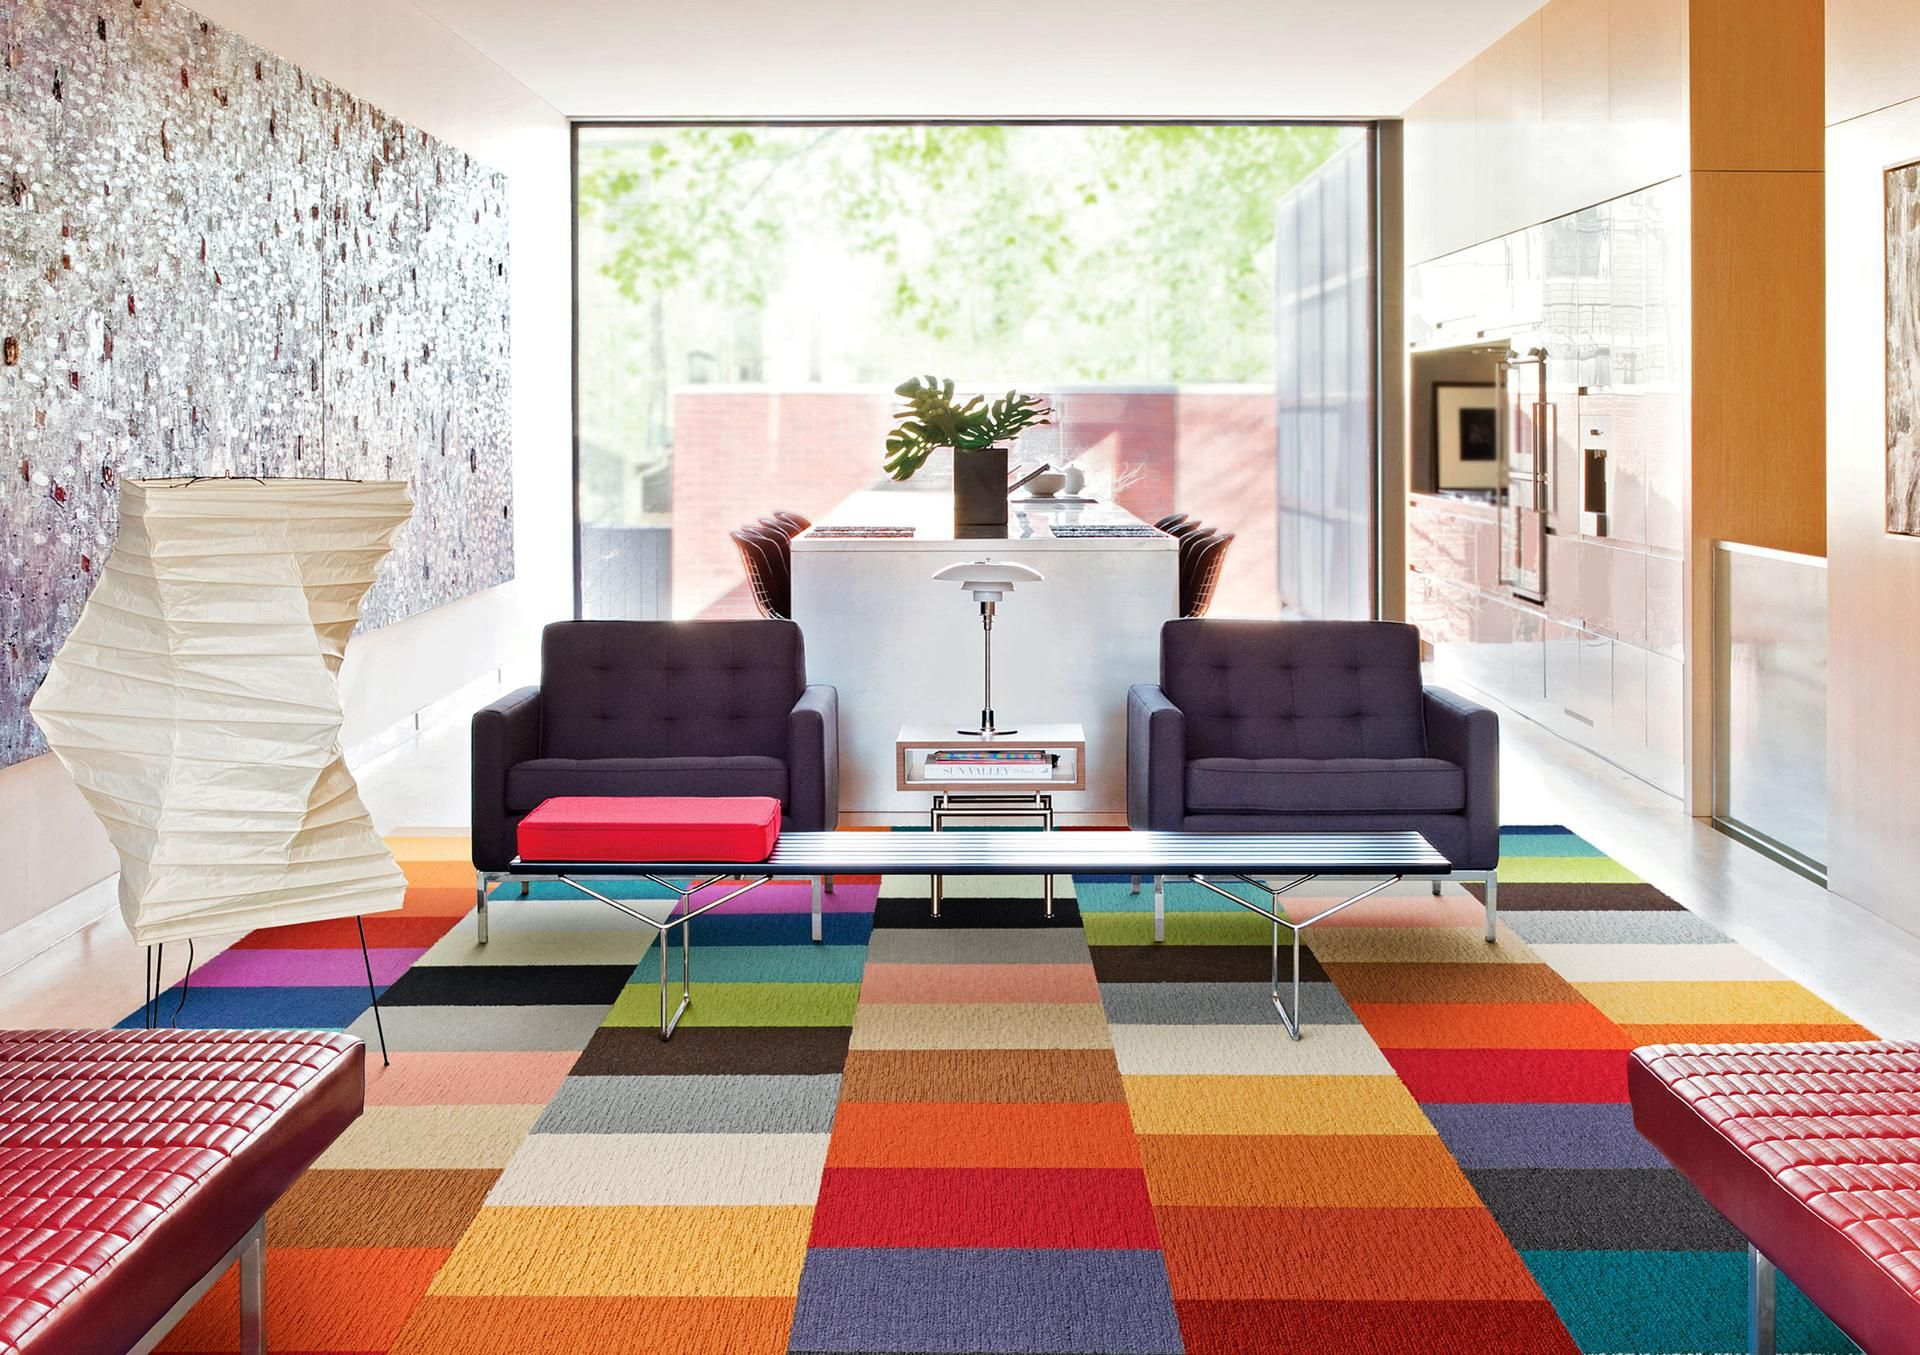 Carpet Design Ideas flor carpet tiles design ideas - penelusuran google | floor